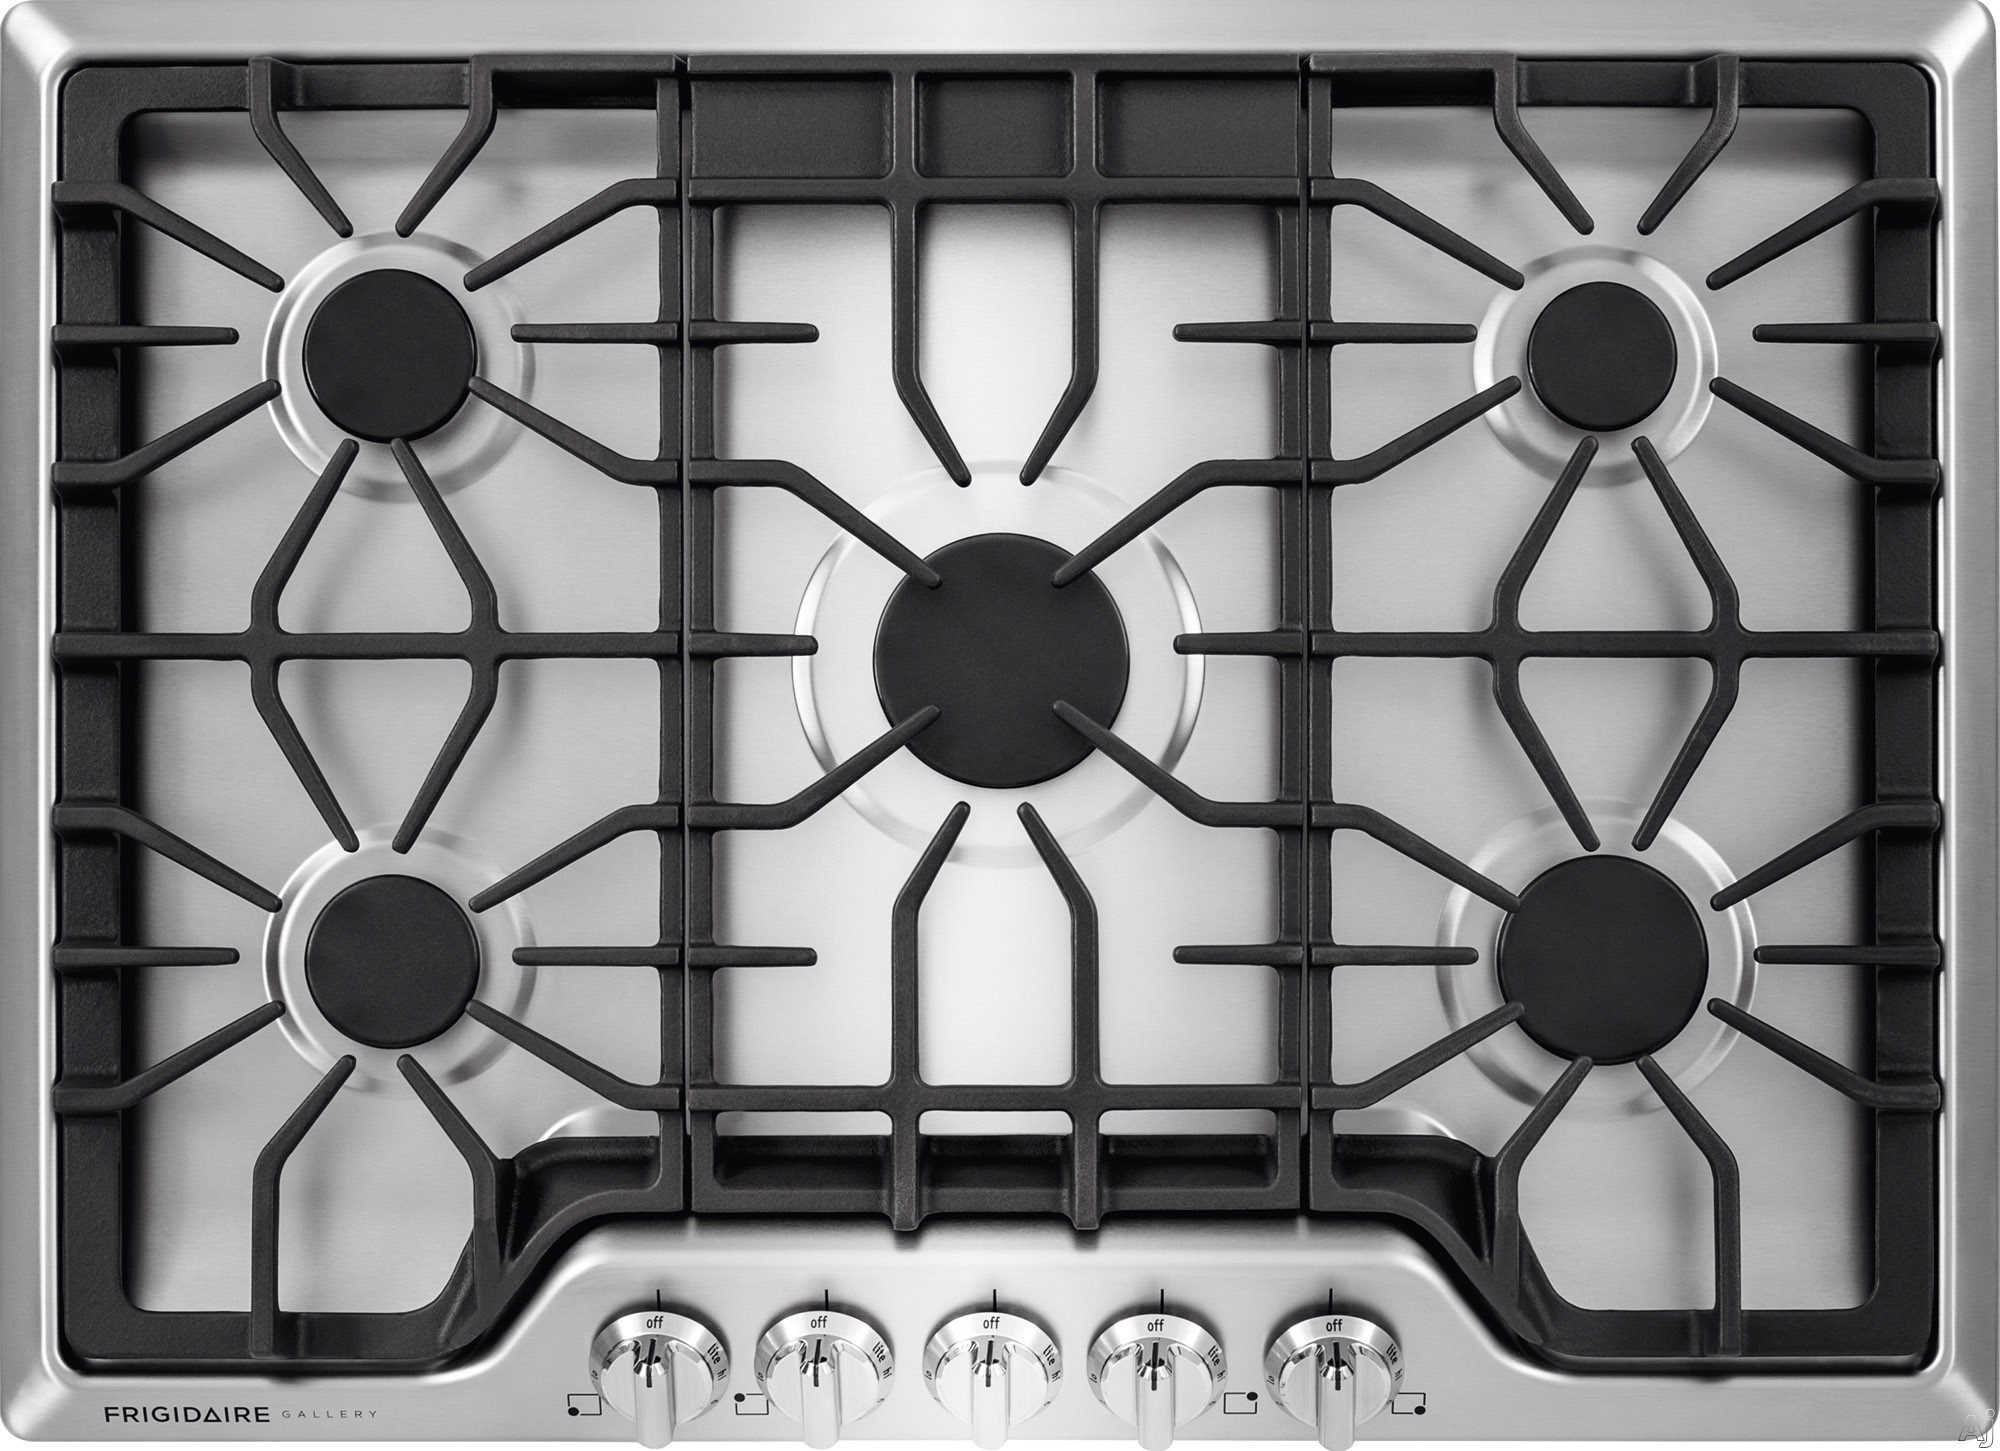 Frigidaire Gallery Series FGGC3047Q 30 Inch Gas Cooktop with LP Conversion Option, Seamless Recessed Burners, SpillSafe®, Angled Front Controls, Continuous Iron Grates, Low Simmer Burner and ADA Compliant FGGC3047Q